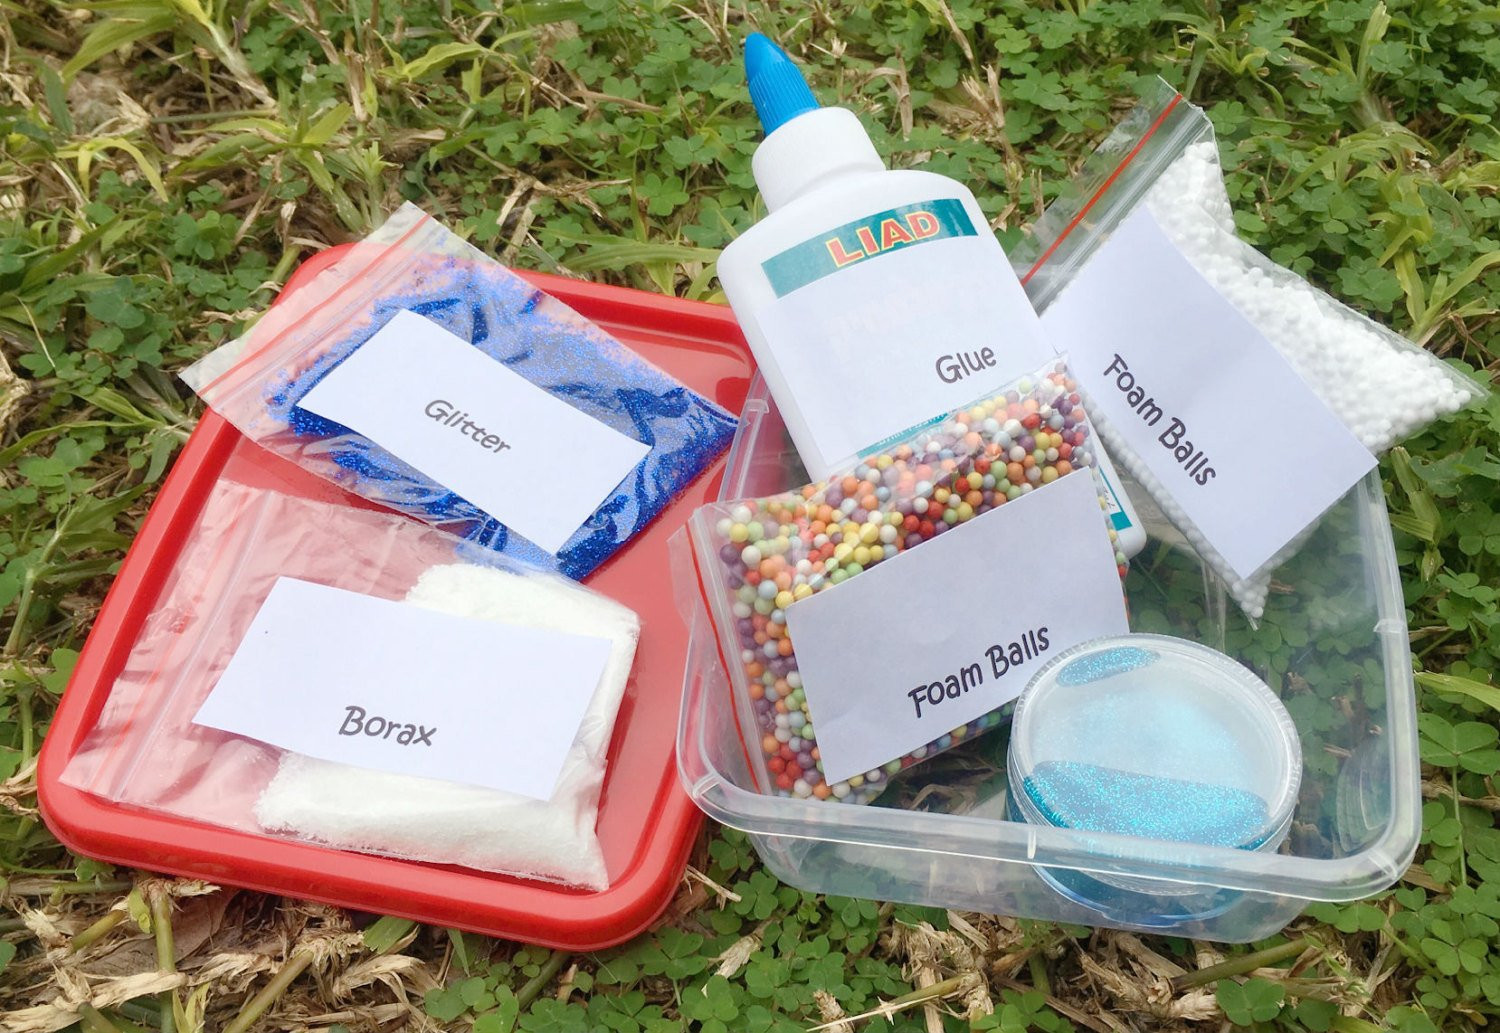 Best ideas about DIY Slime Kit . Save or Pin Slime Kit DIY slime kit Kids craft DIY kitGlue Kit Now.